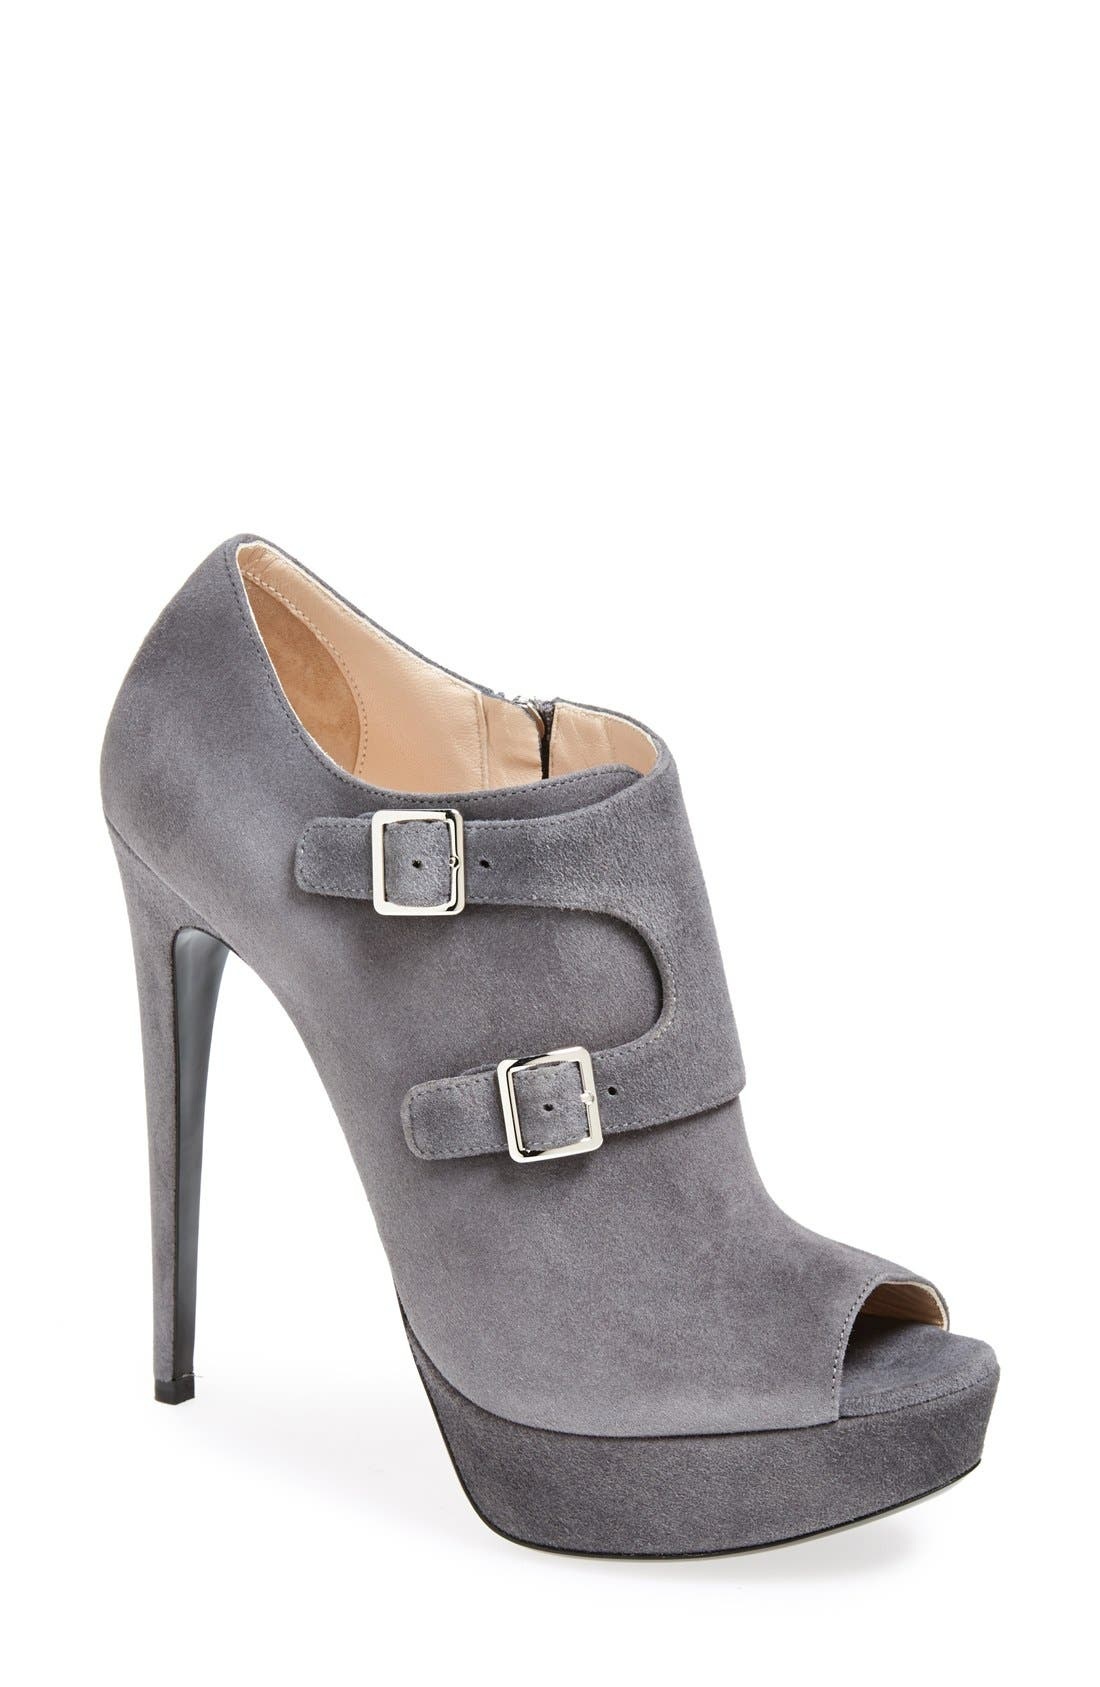 Alternate Image 1 Selected - Prada Monk Strap Bootie (Women)